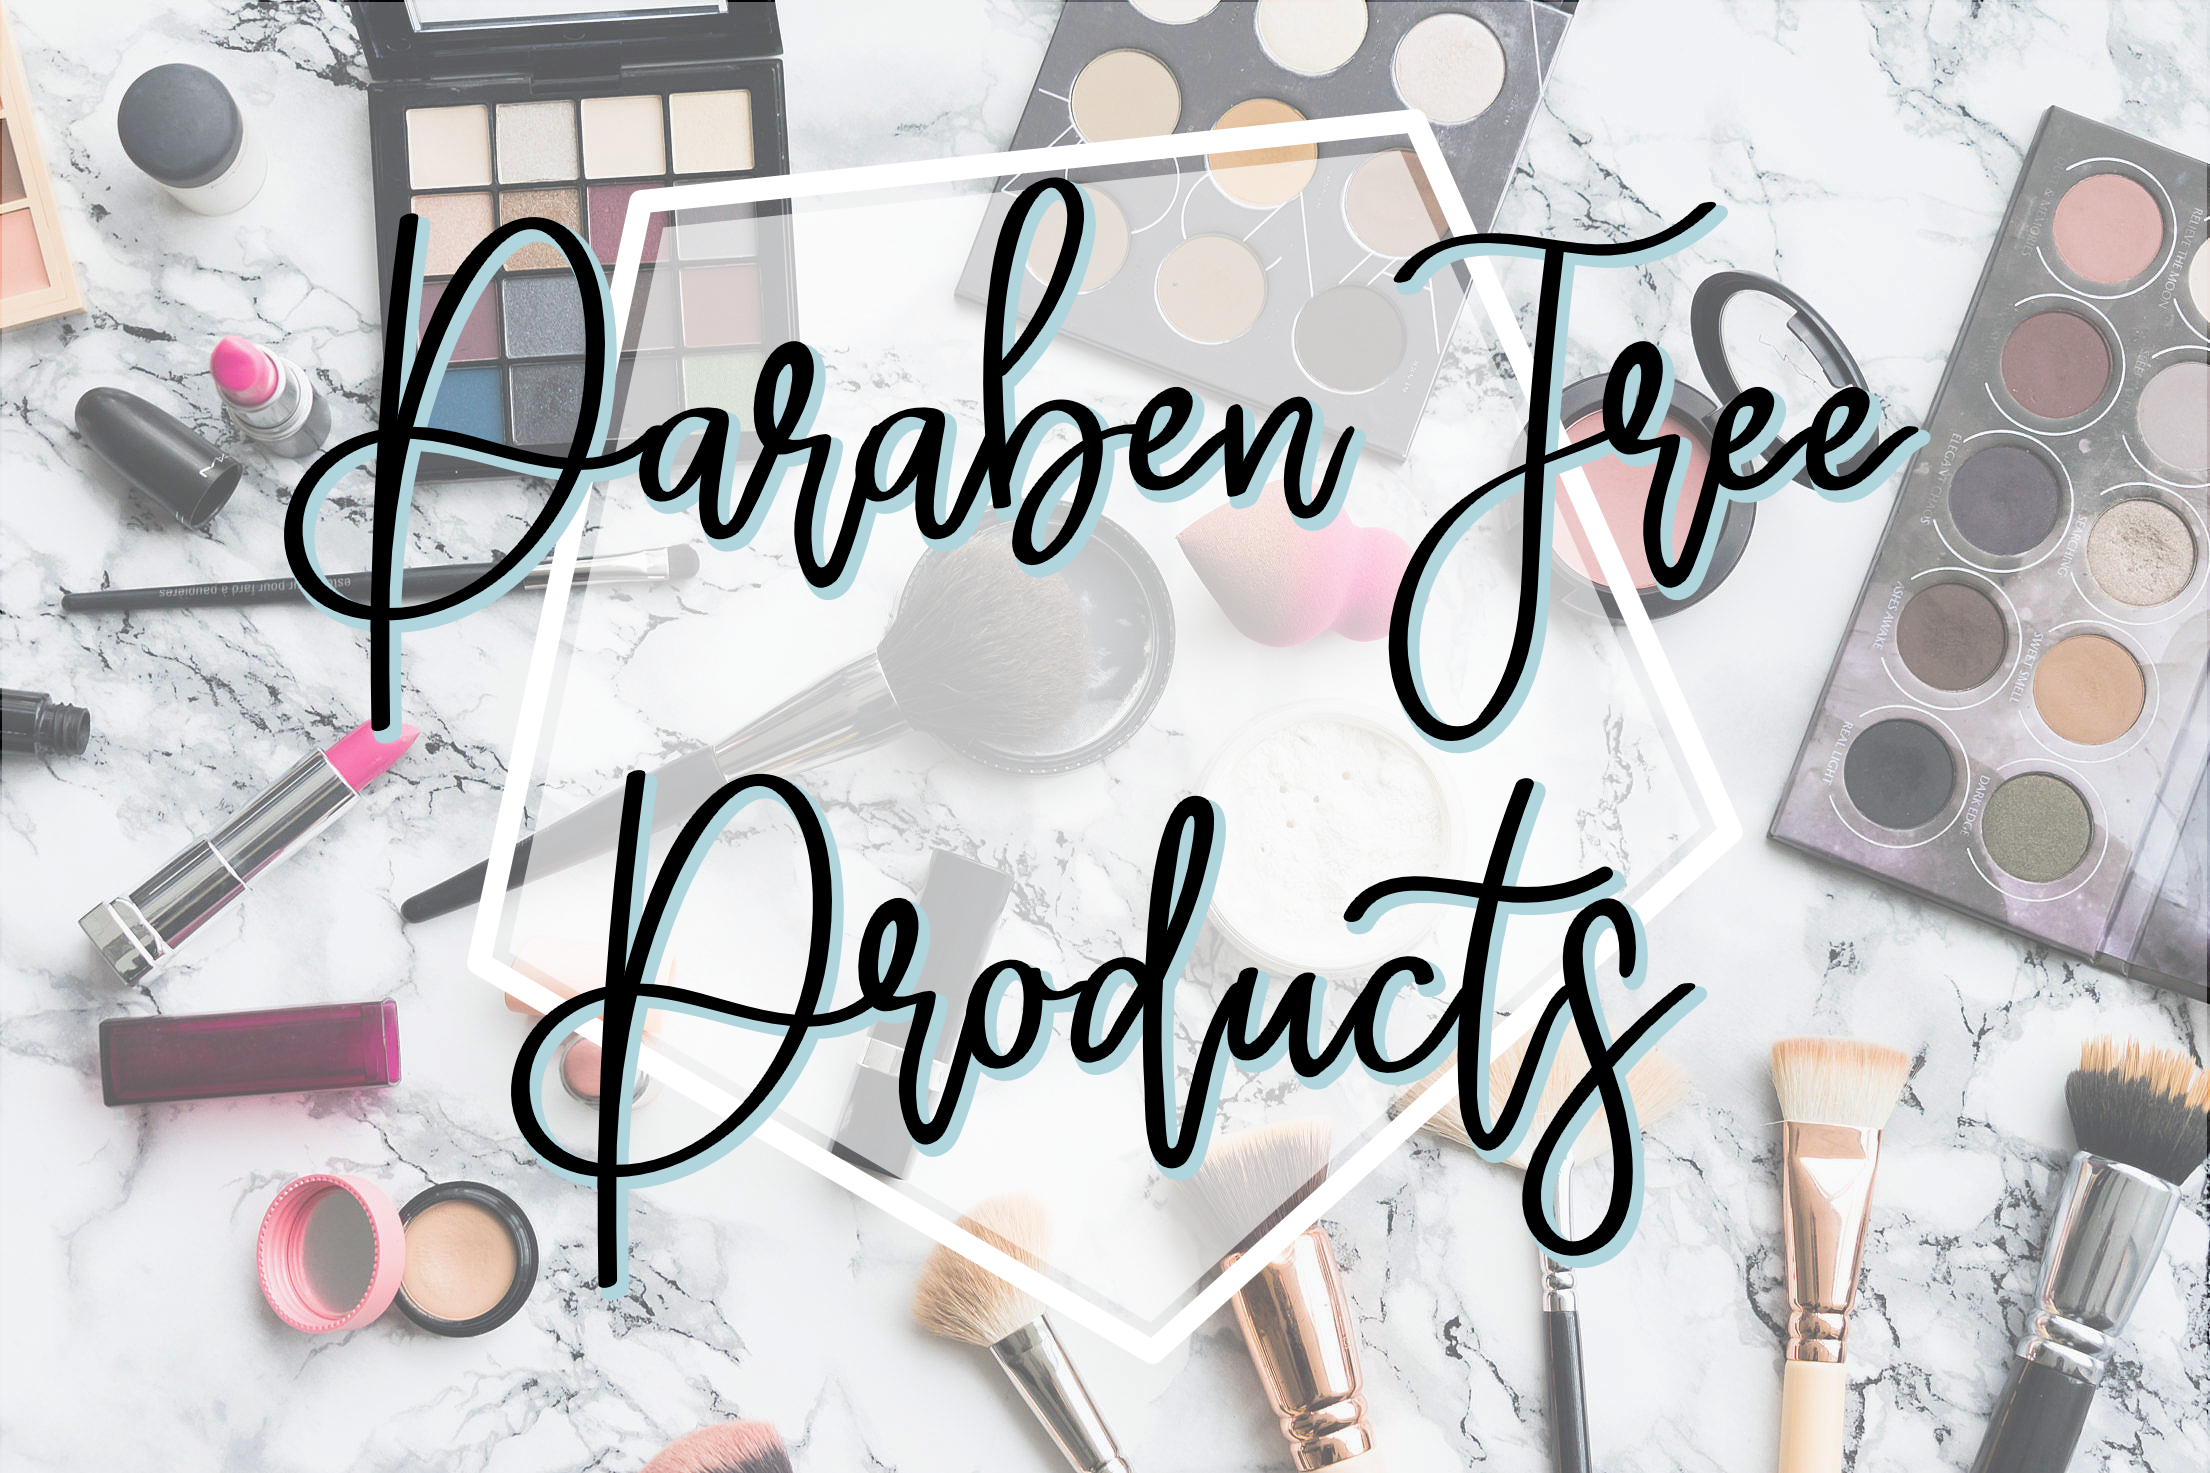 Paraben free makeup and skincare